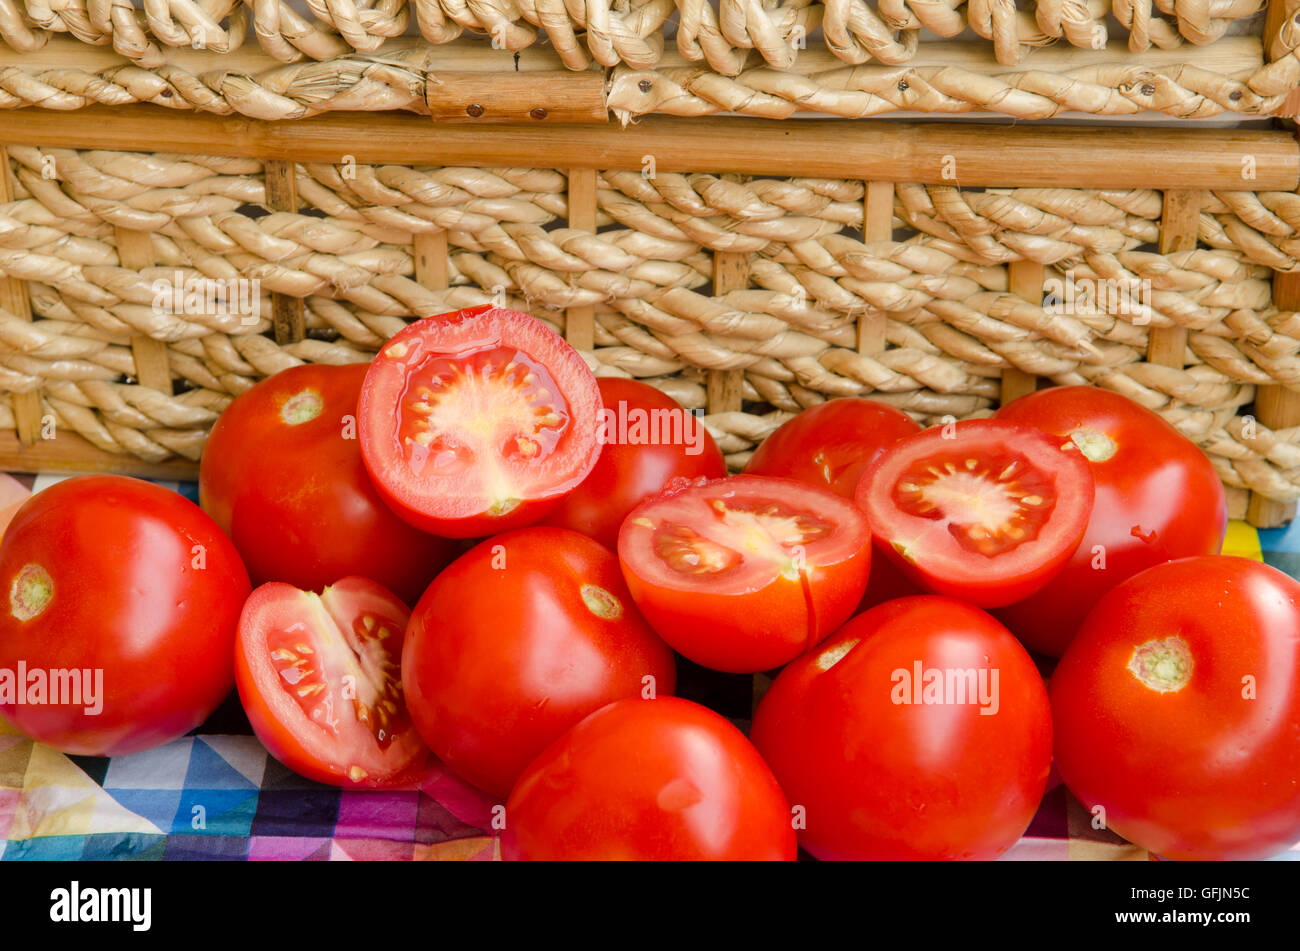 whole and cut Tomatoes stacked against a woven basket Stock Photo